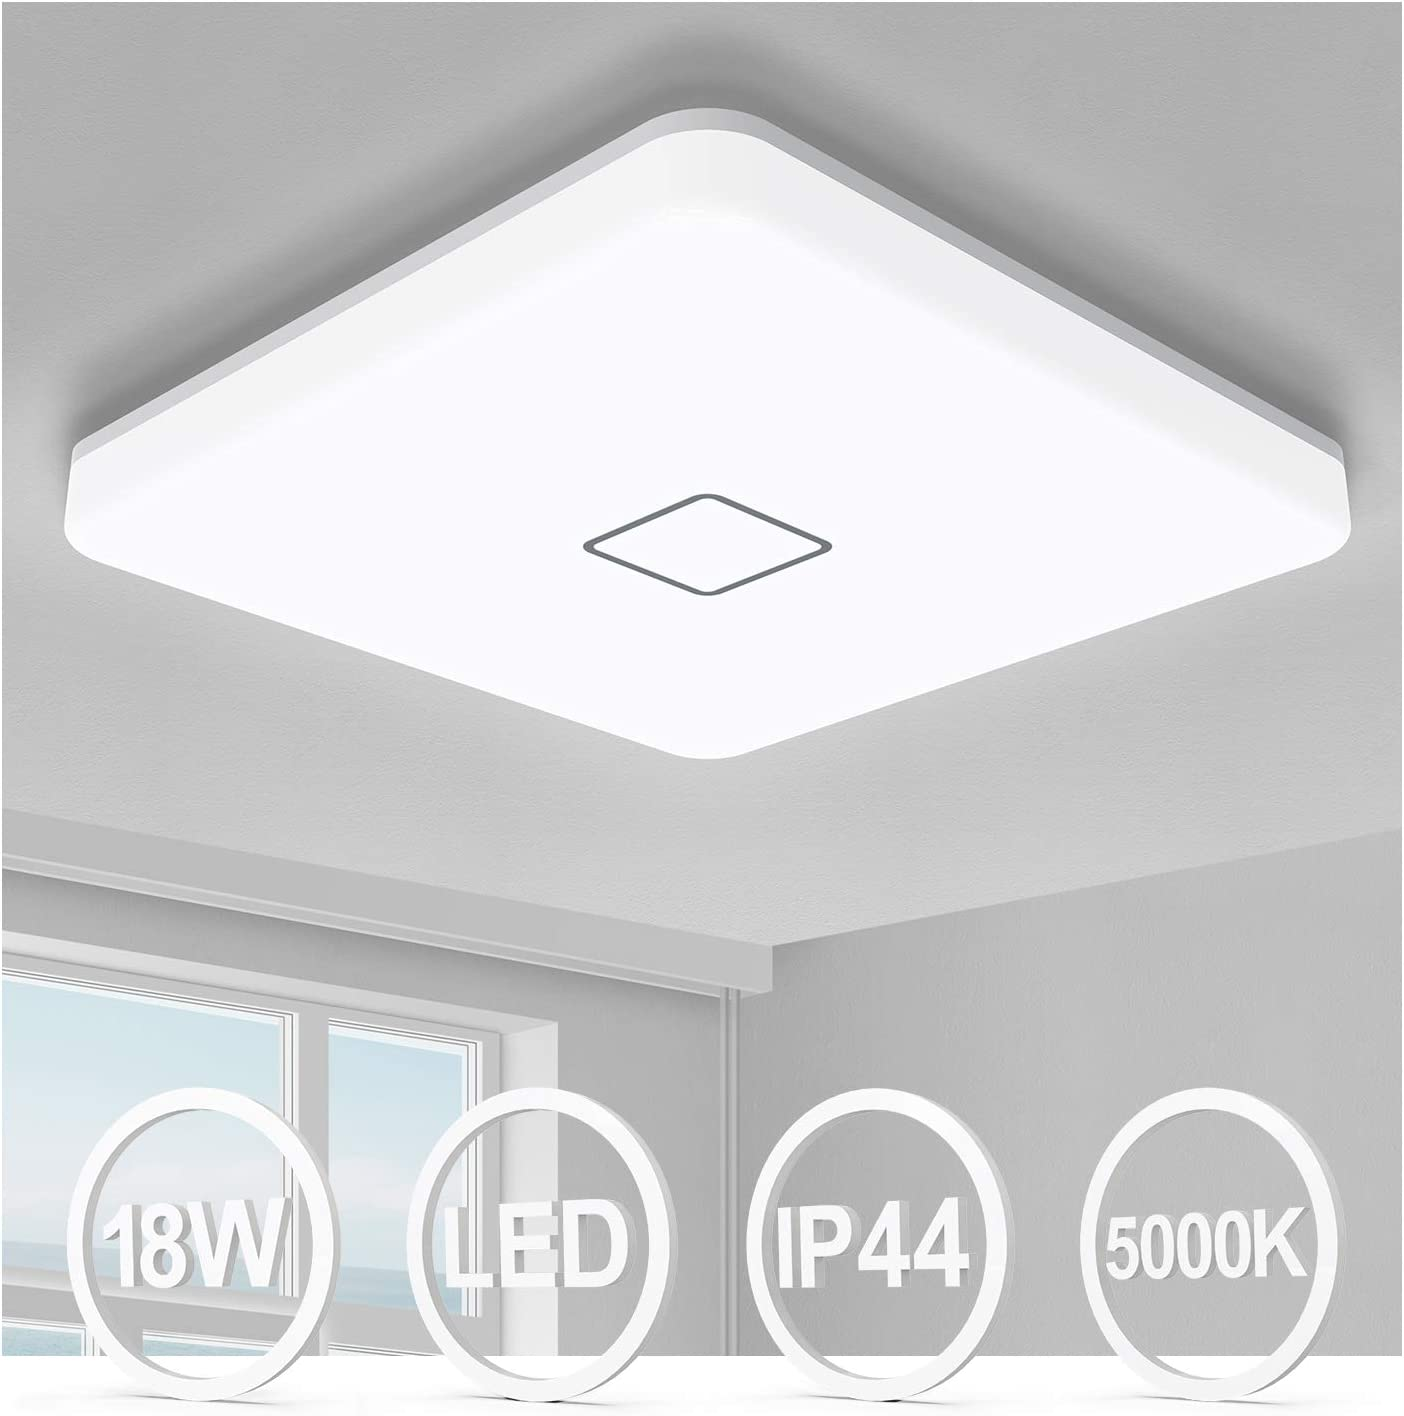 Airand 18W LED Ceiling Light, 10.6 inch Square 1800lm Ceiling Light Fixture Flush Mount, 5000K Waterproof IP44 Ceiling Lamp for Bathroom,Kitchen,Closet,Bedroom,Living Room,Hallway,Office, and More